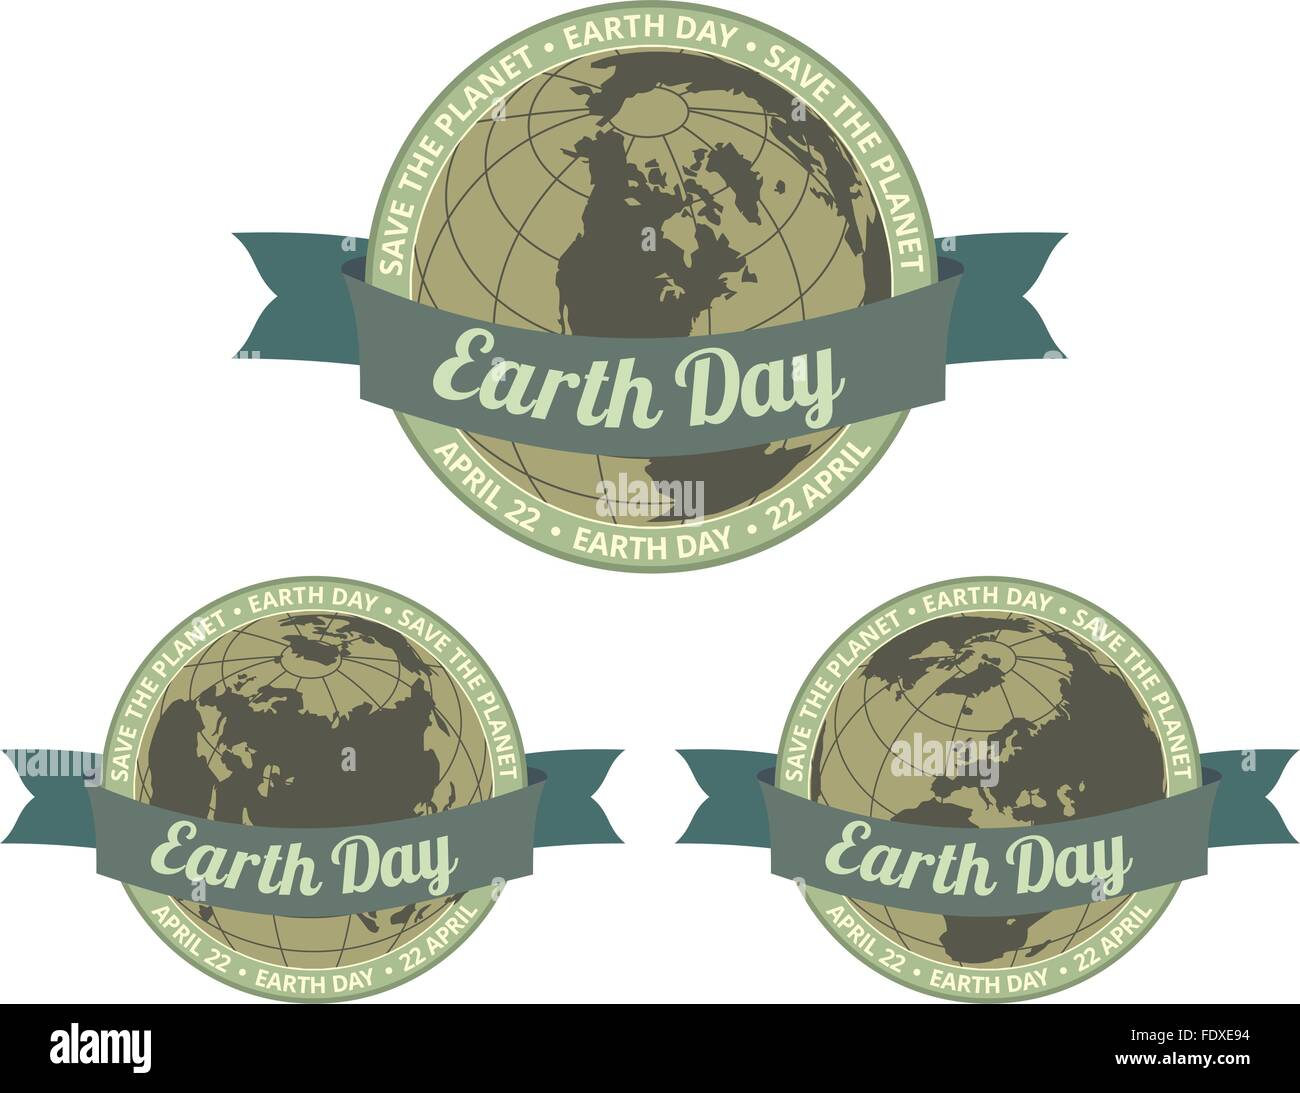 Set of globes with Earth day written inside old style banner and Save the planet slogan around. EPS8 vector illustration. - Stock Image